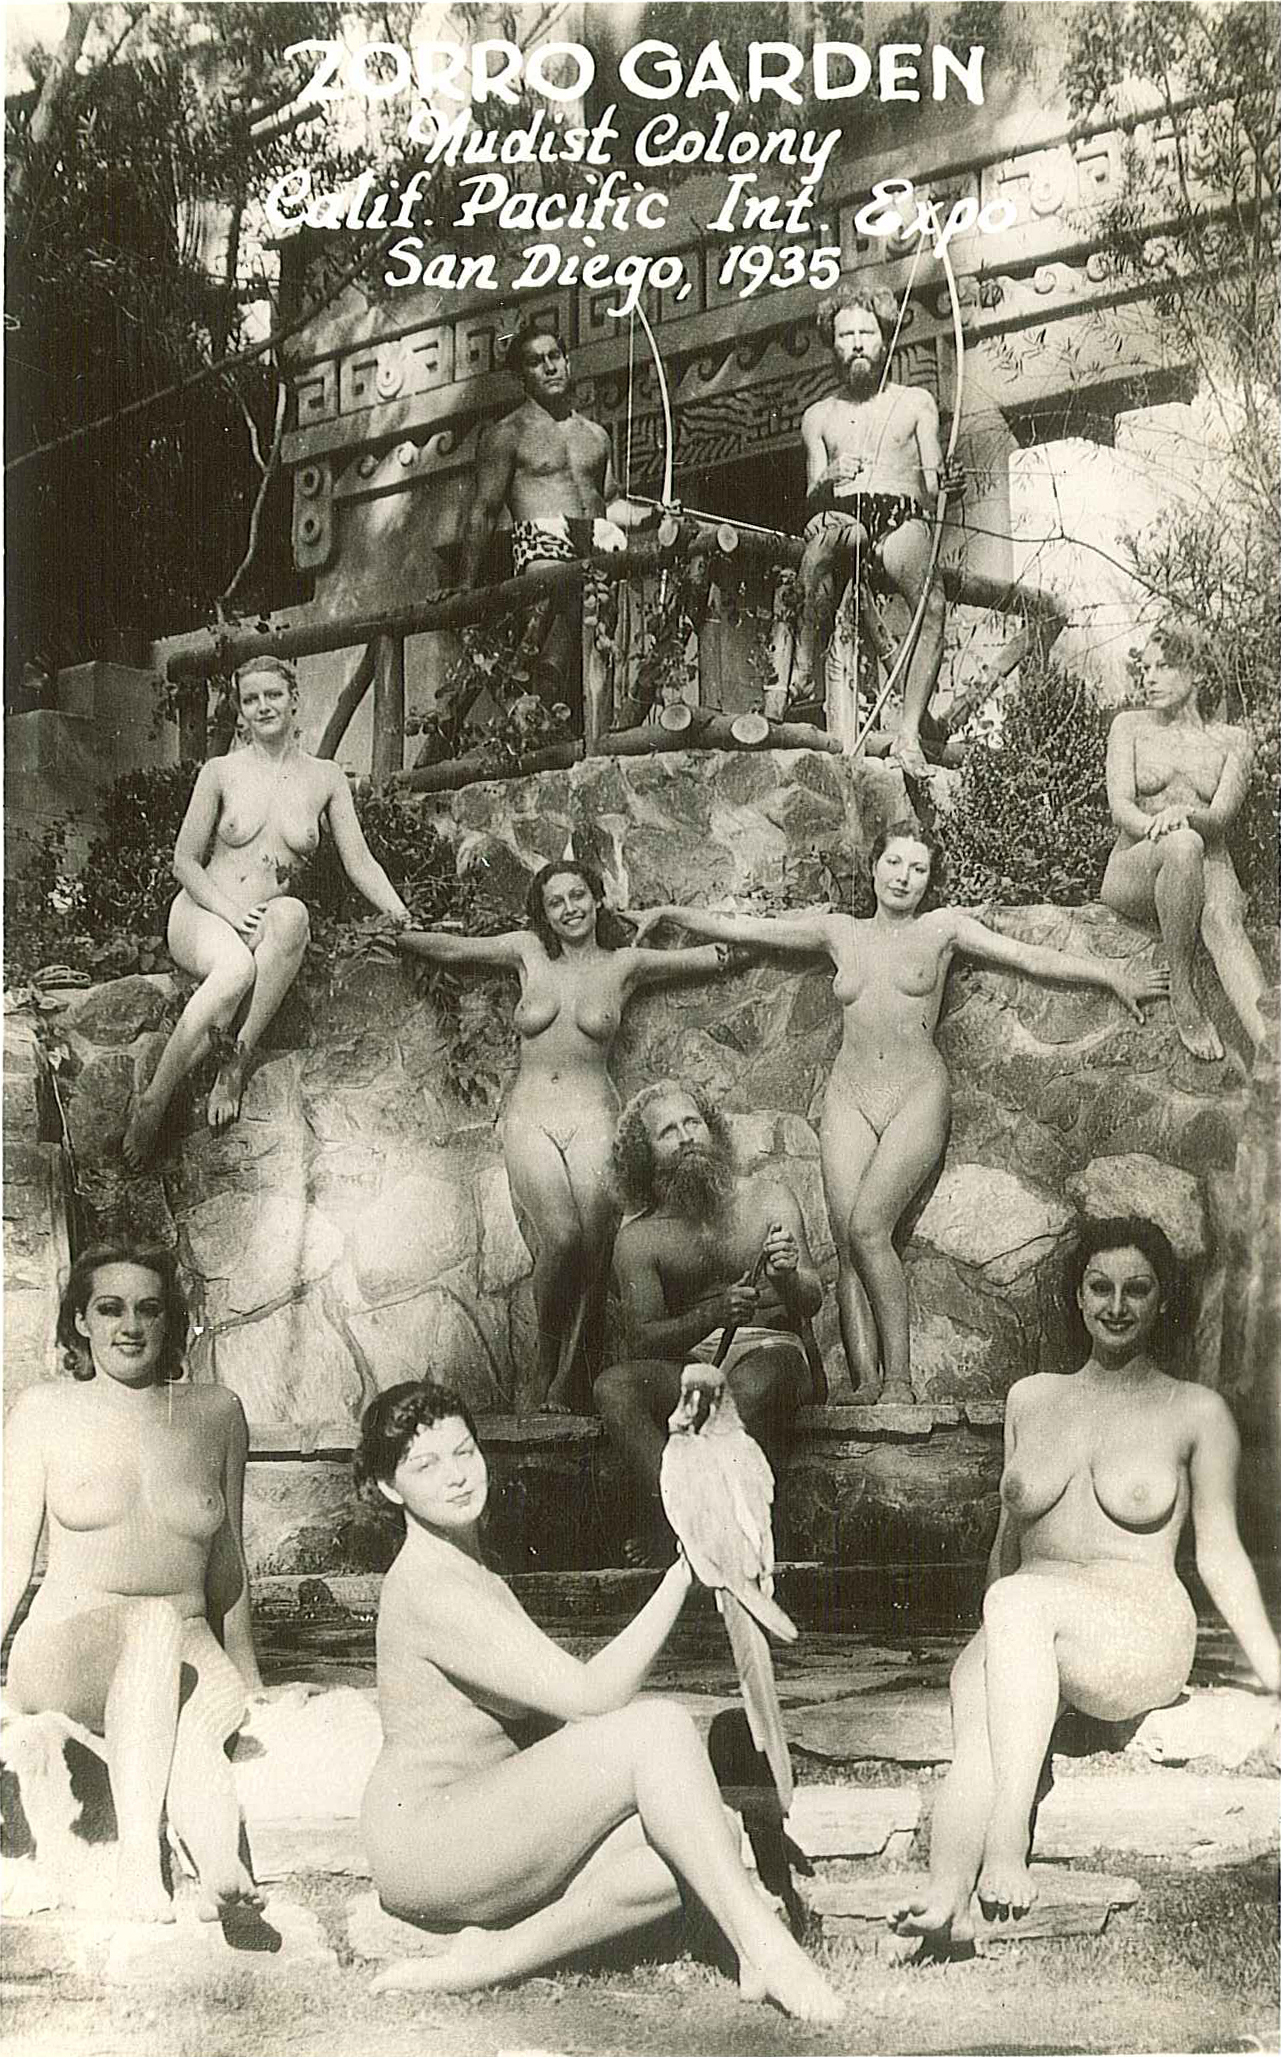 Zoro Garden Nudist Colony, California Pacific International Exposition, San Diego, Ca ,1935